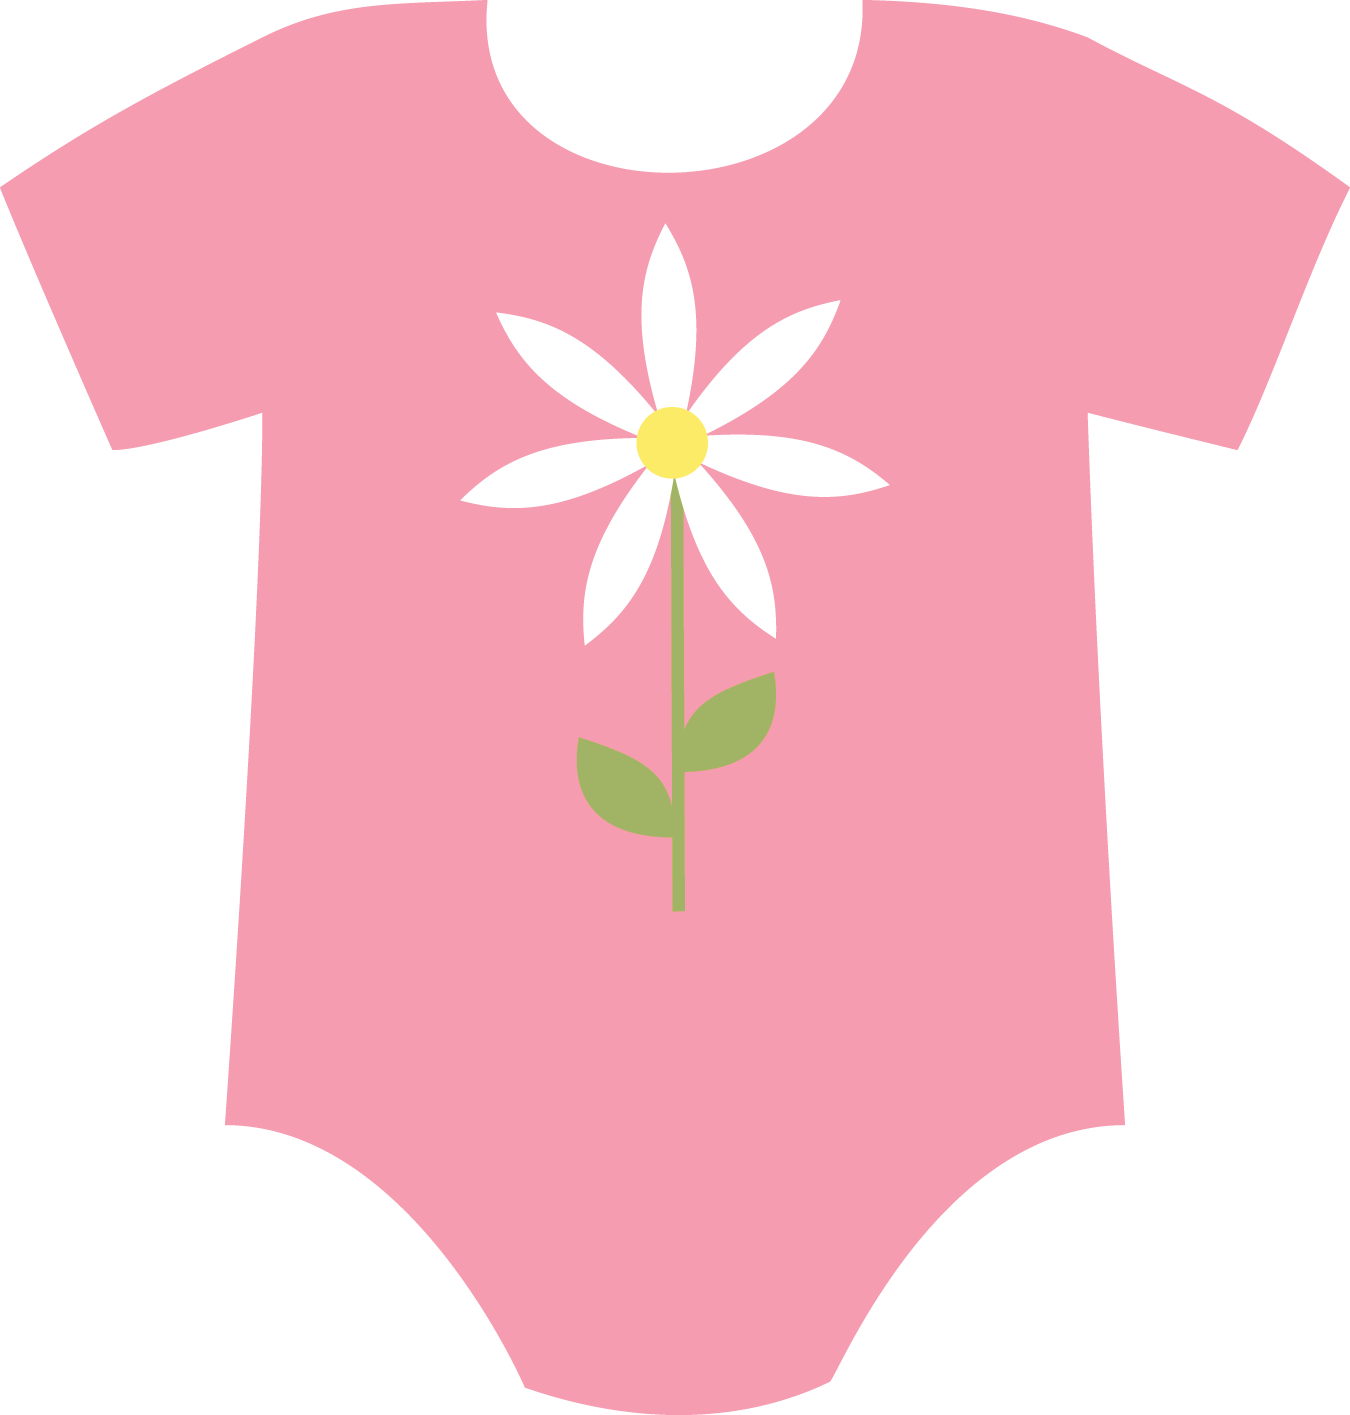 Baby onesies pretty png. Flower girl dress clipart